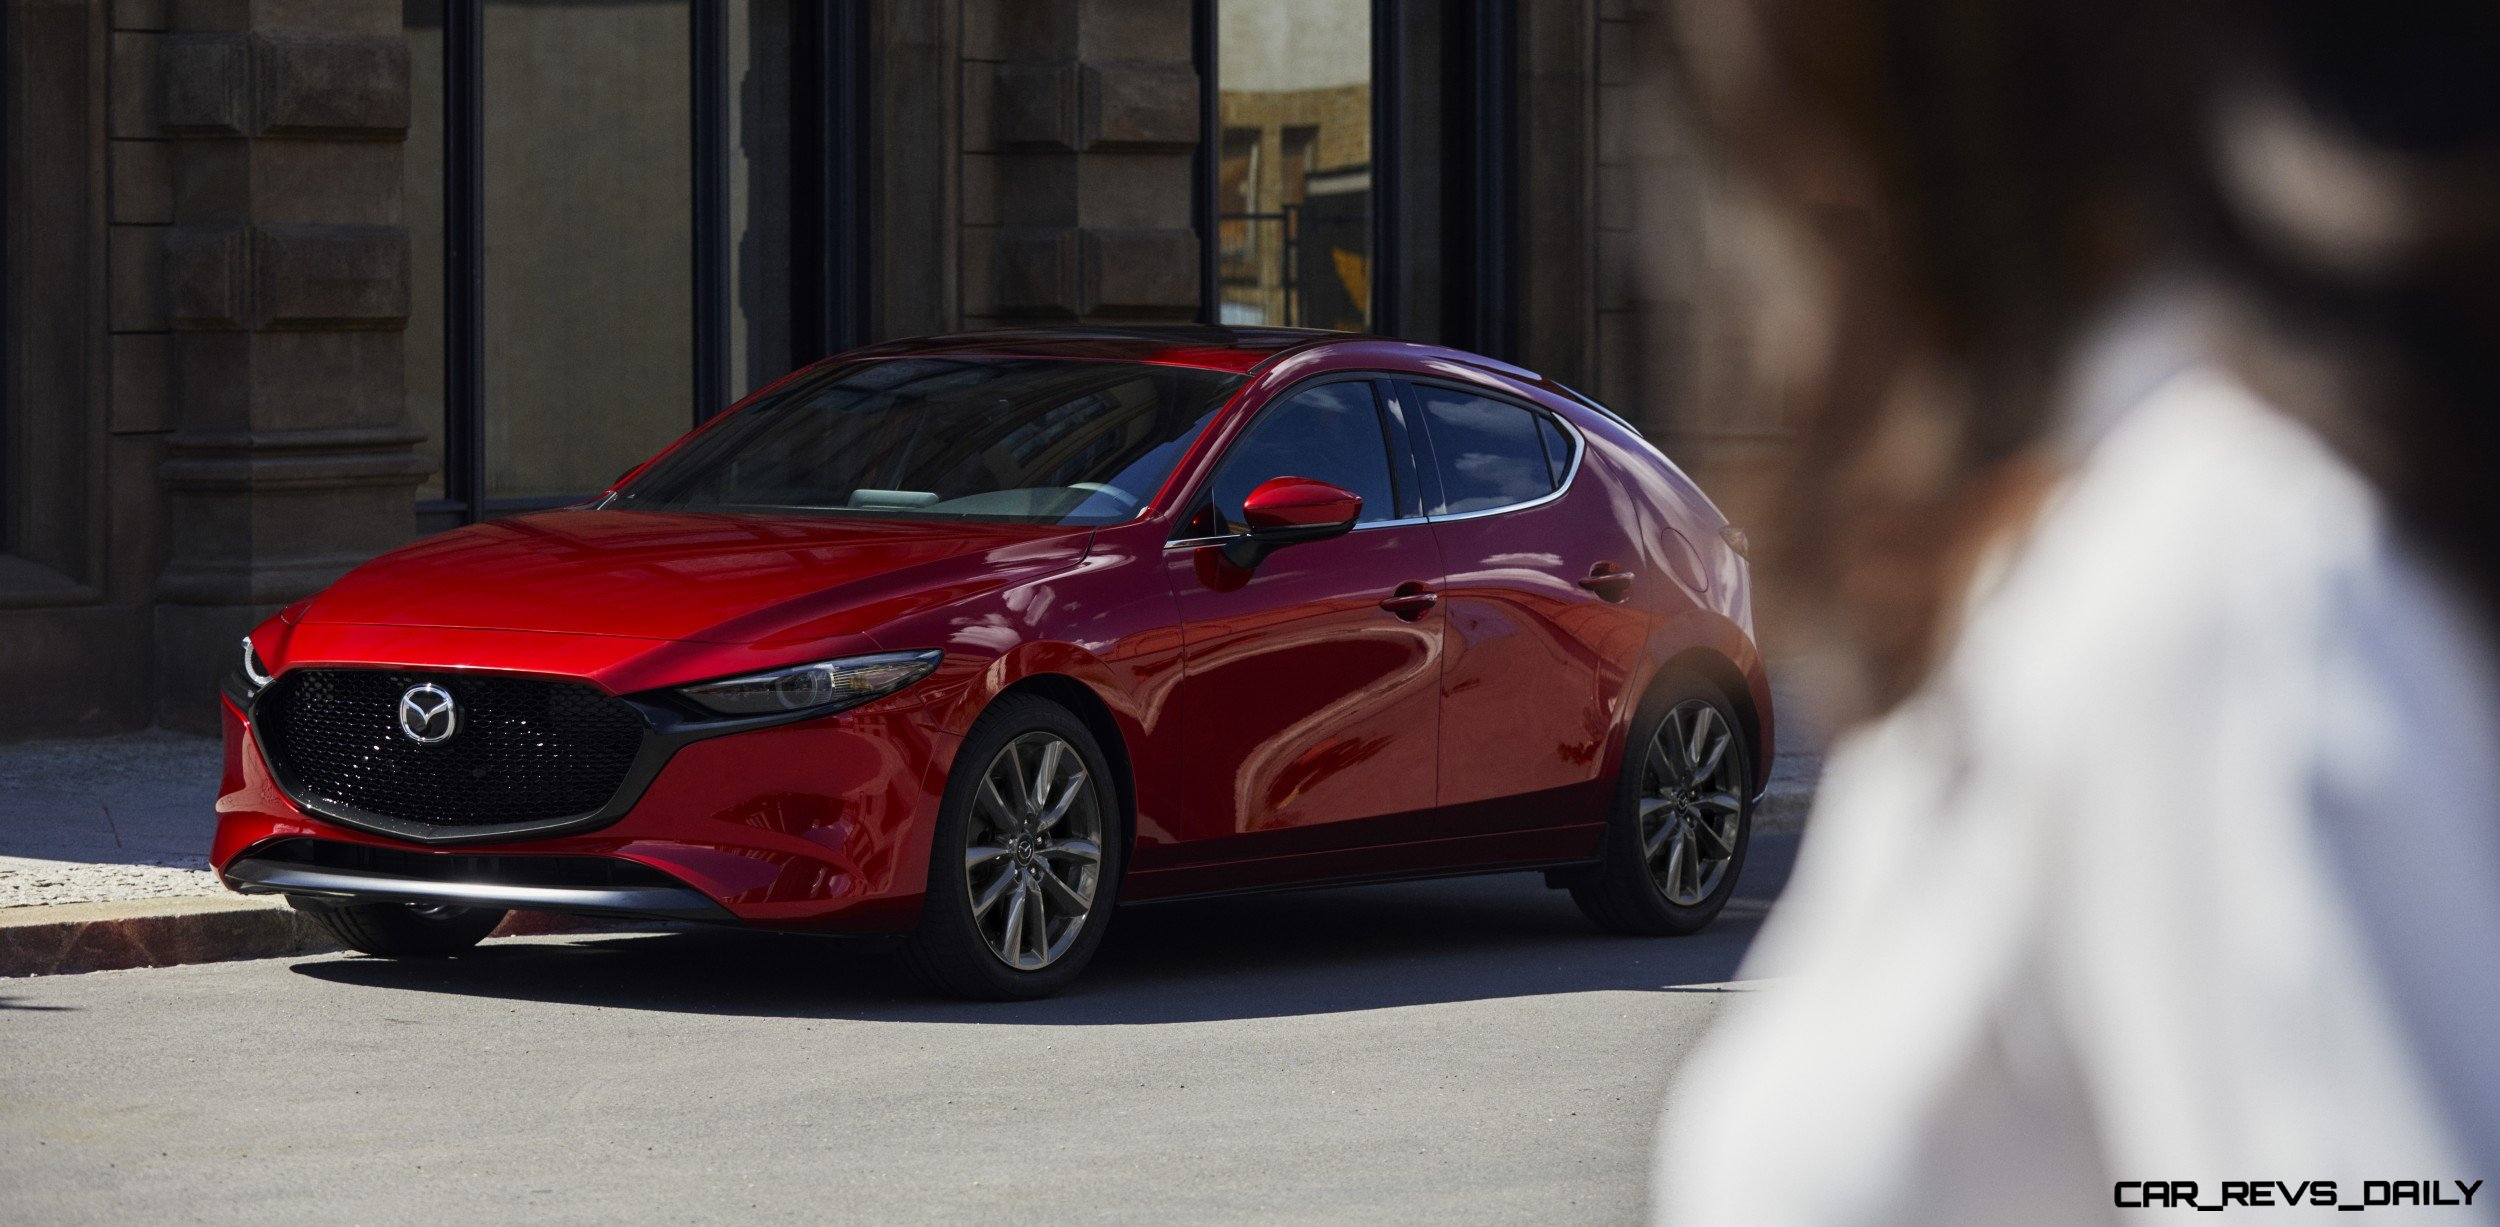 Mazda Goes All In With 2019 Mazda 3, Adds AWD For First Time Ever